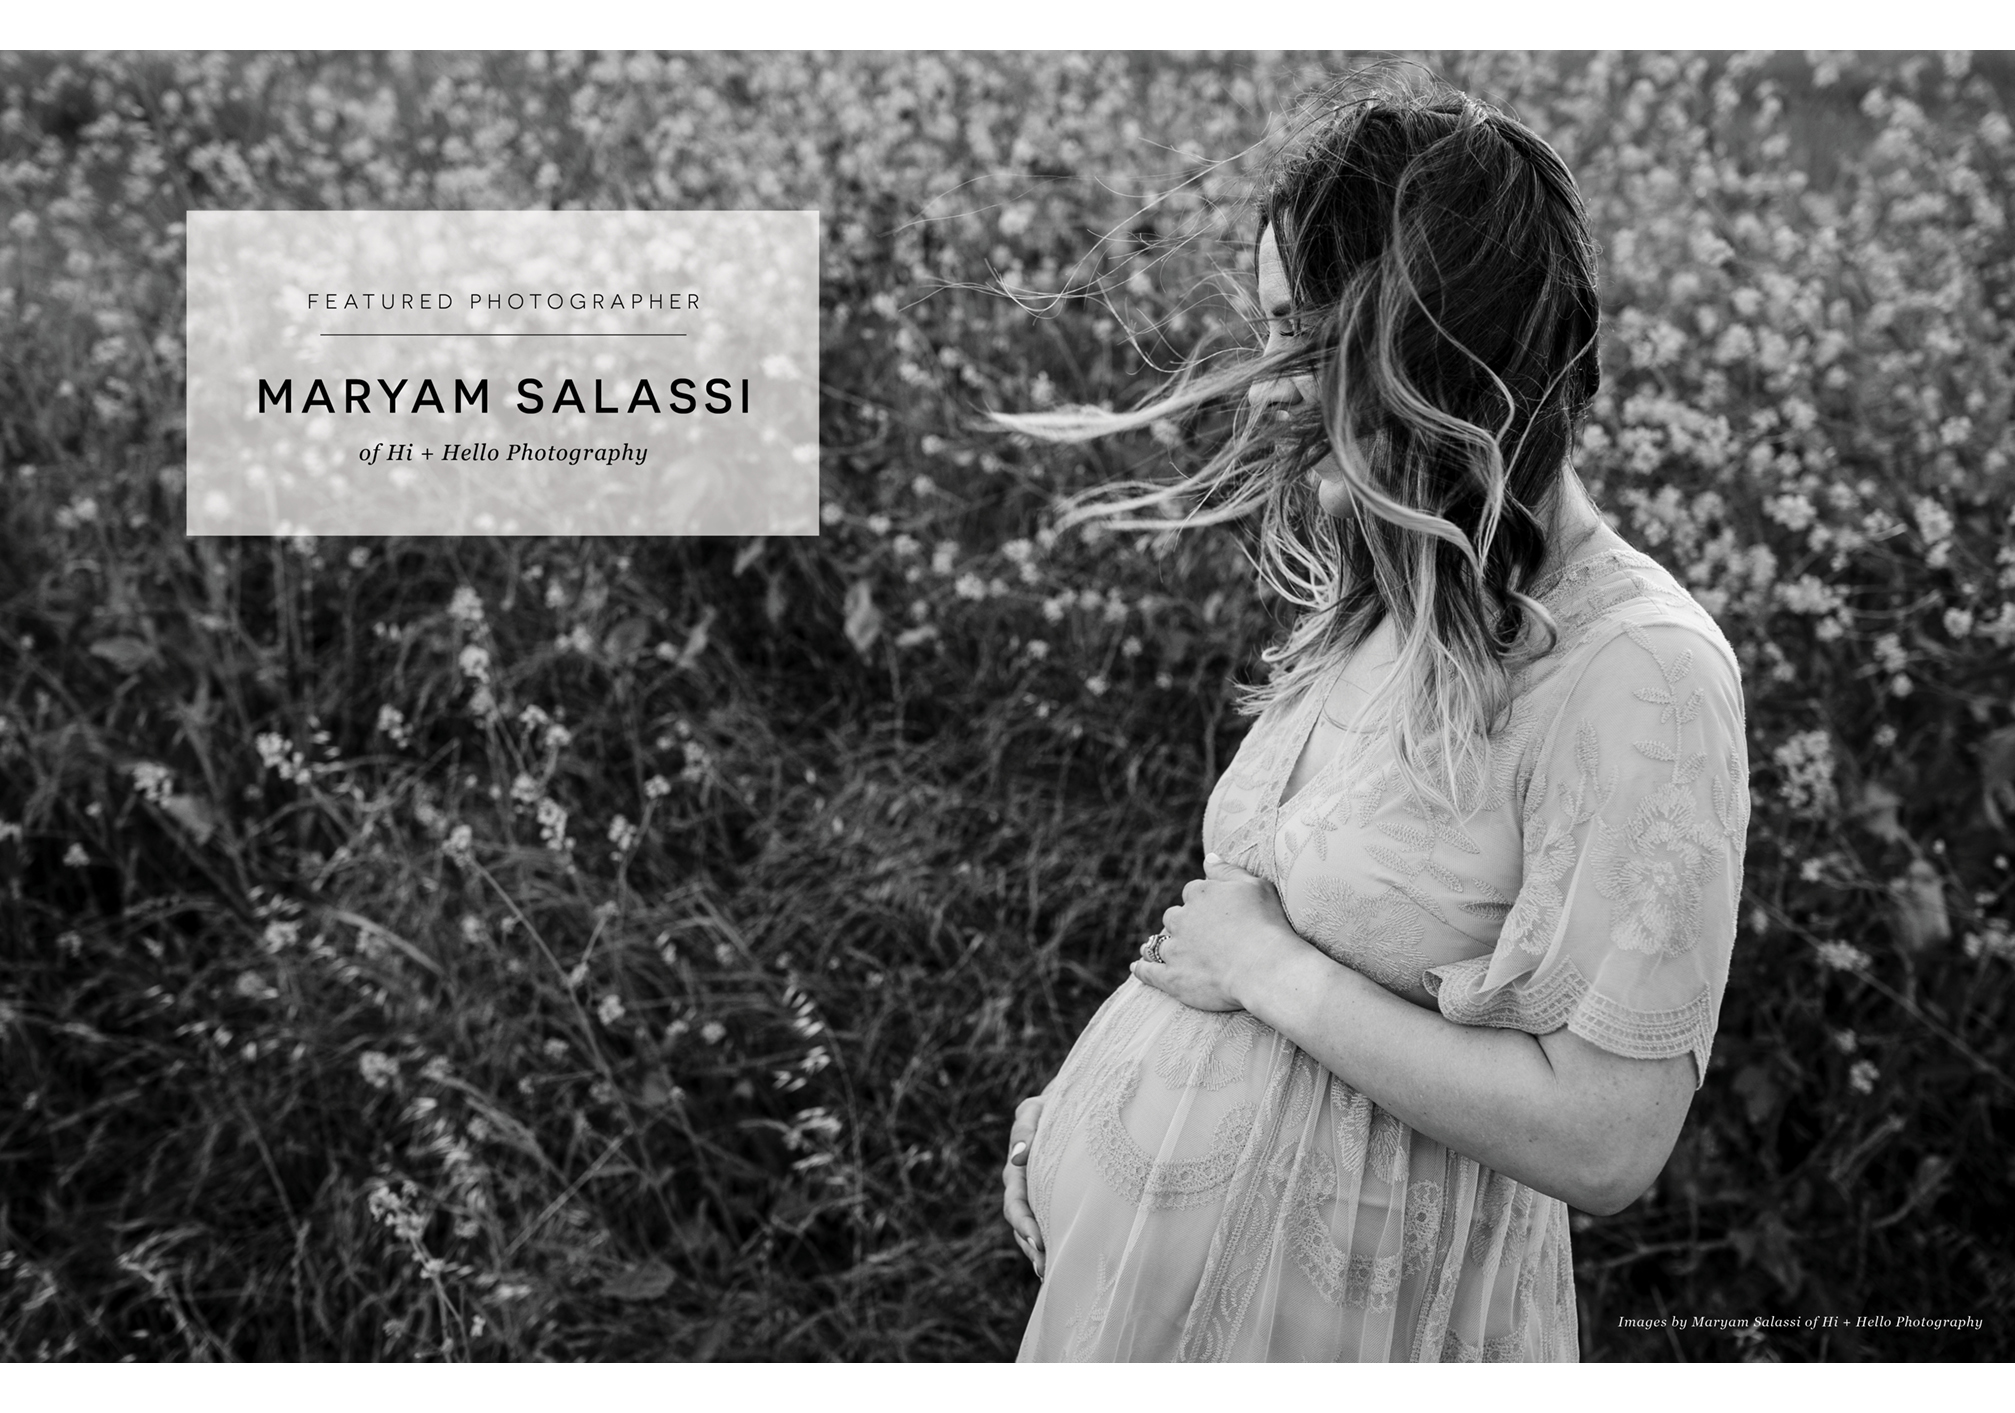 featured photographer Maryam Salassi of Hi + Hello Photography